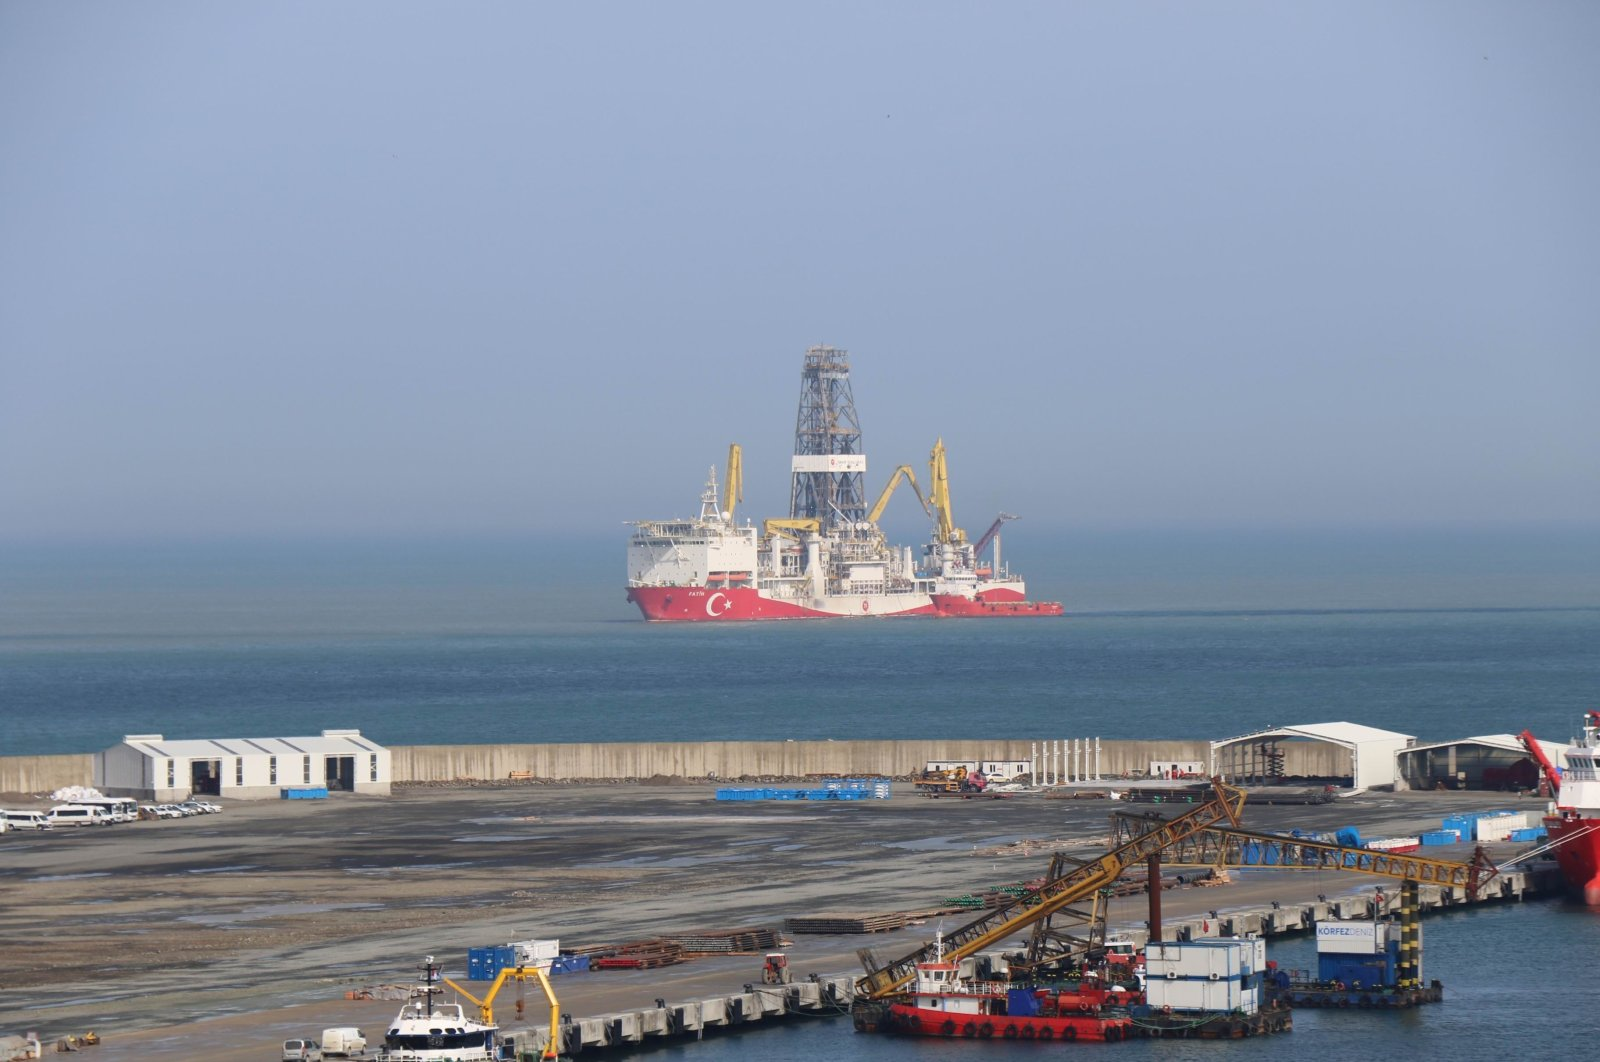 Turkey's first drillship Fatih is seen off the Port of Filyos in Zonguldak, northern Turkey, April, 6, 2021. (IHA Photo)